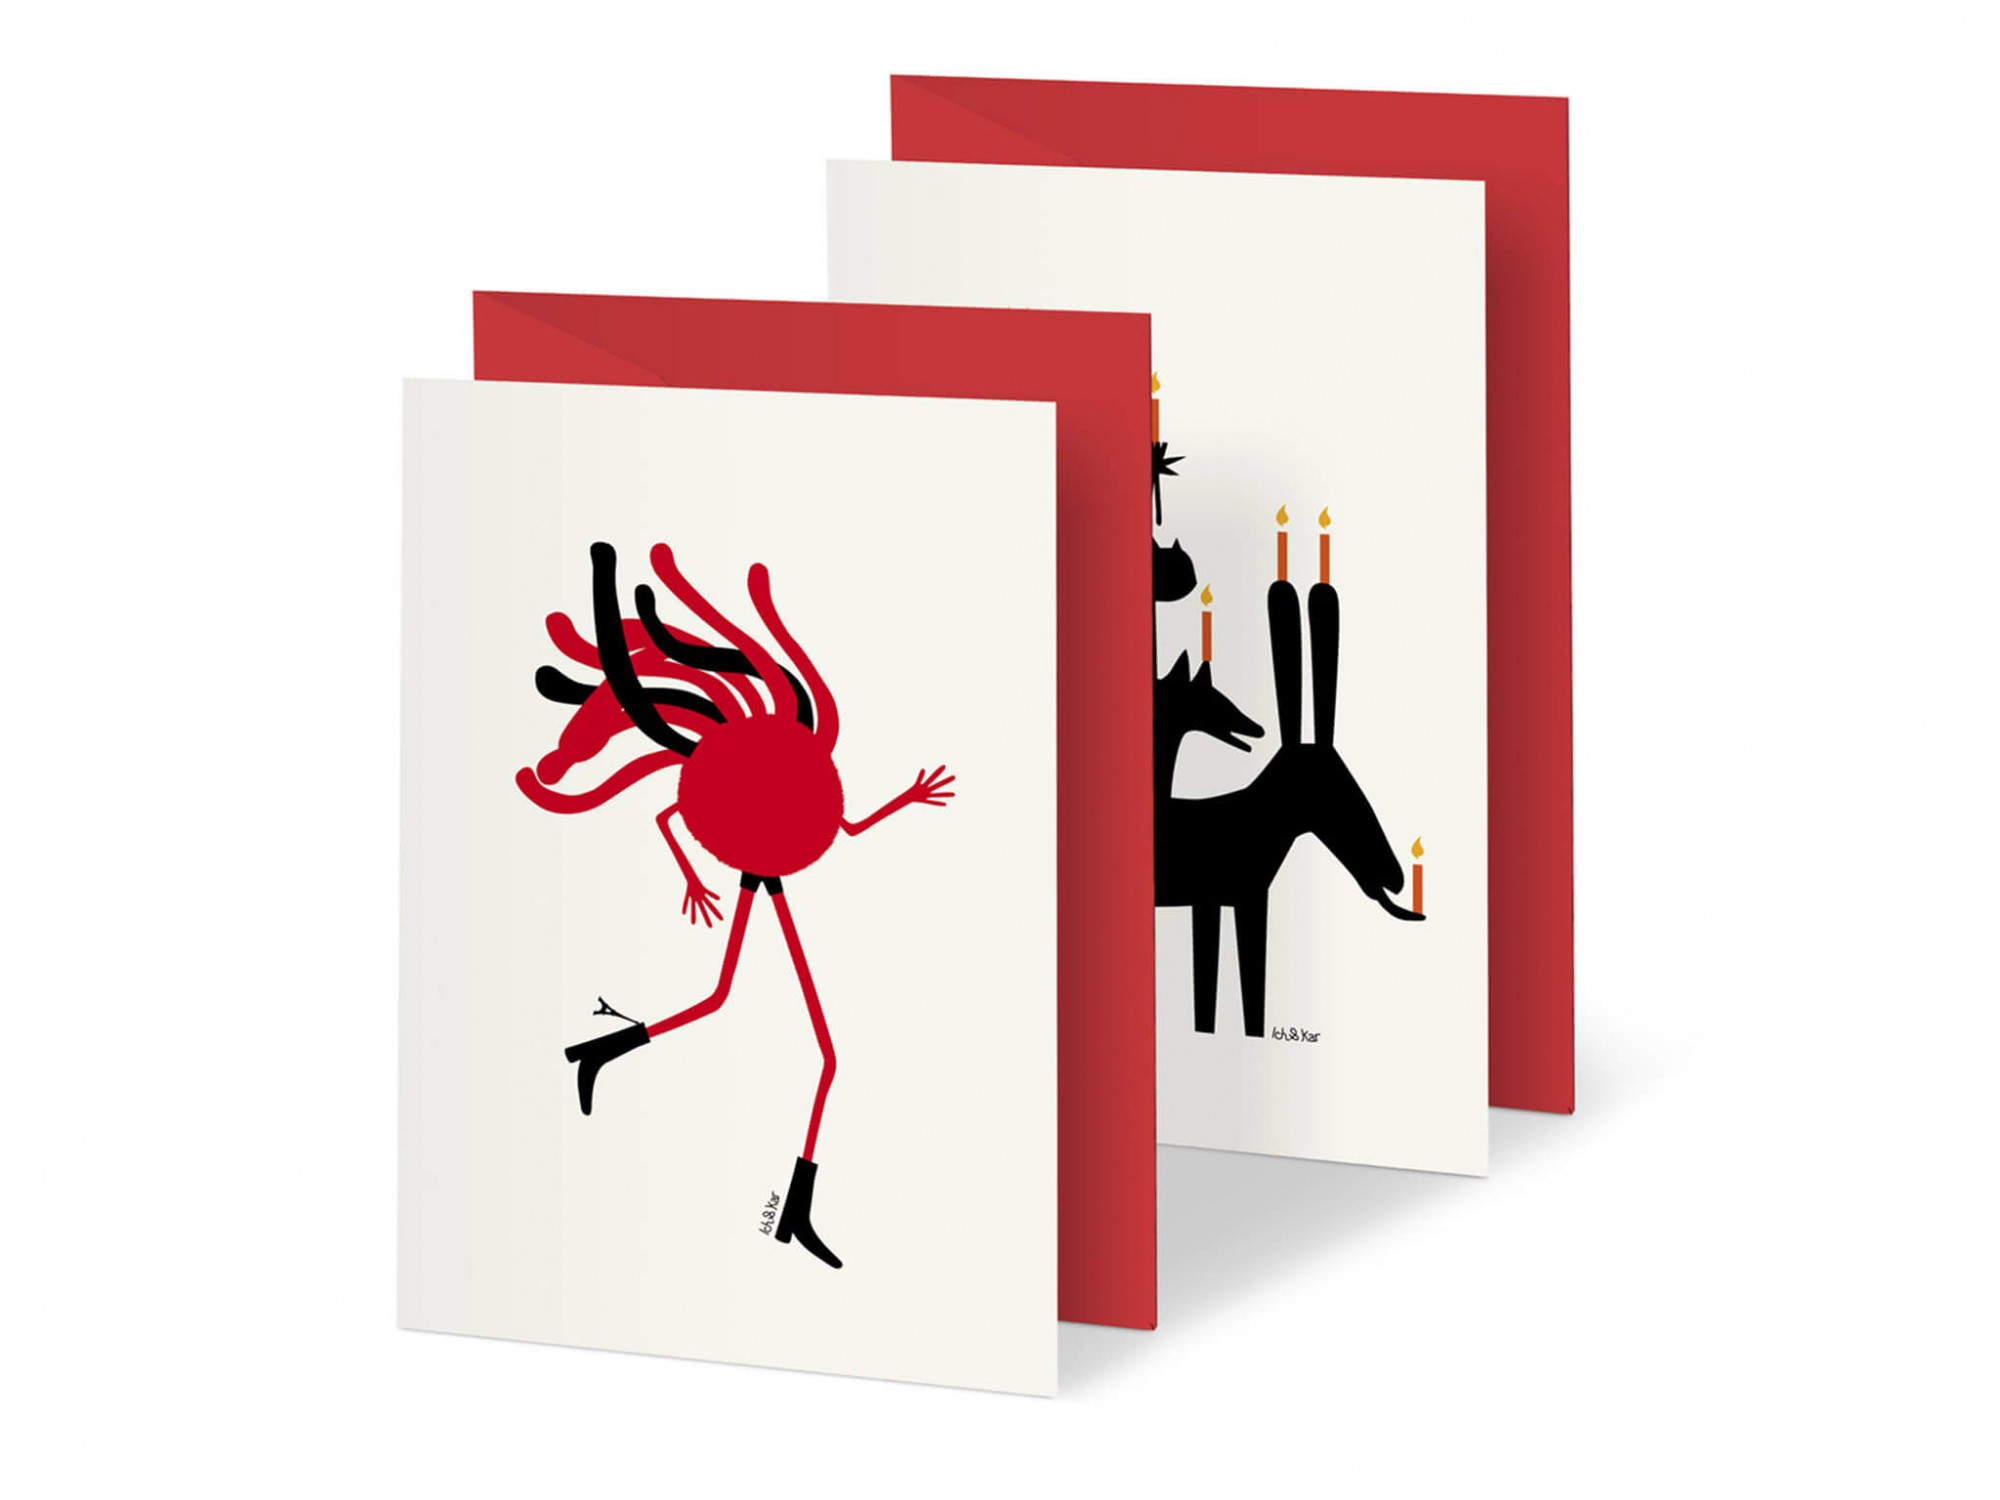 Duo de cartes Spaghetti et Happy birthday par le studio Ichetkar.